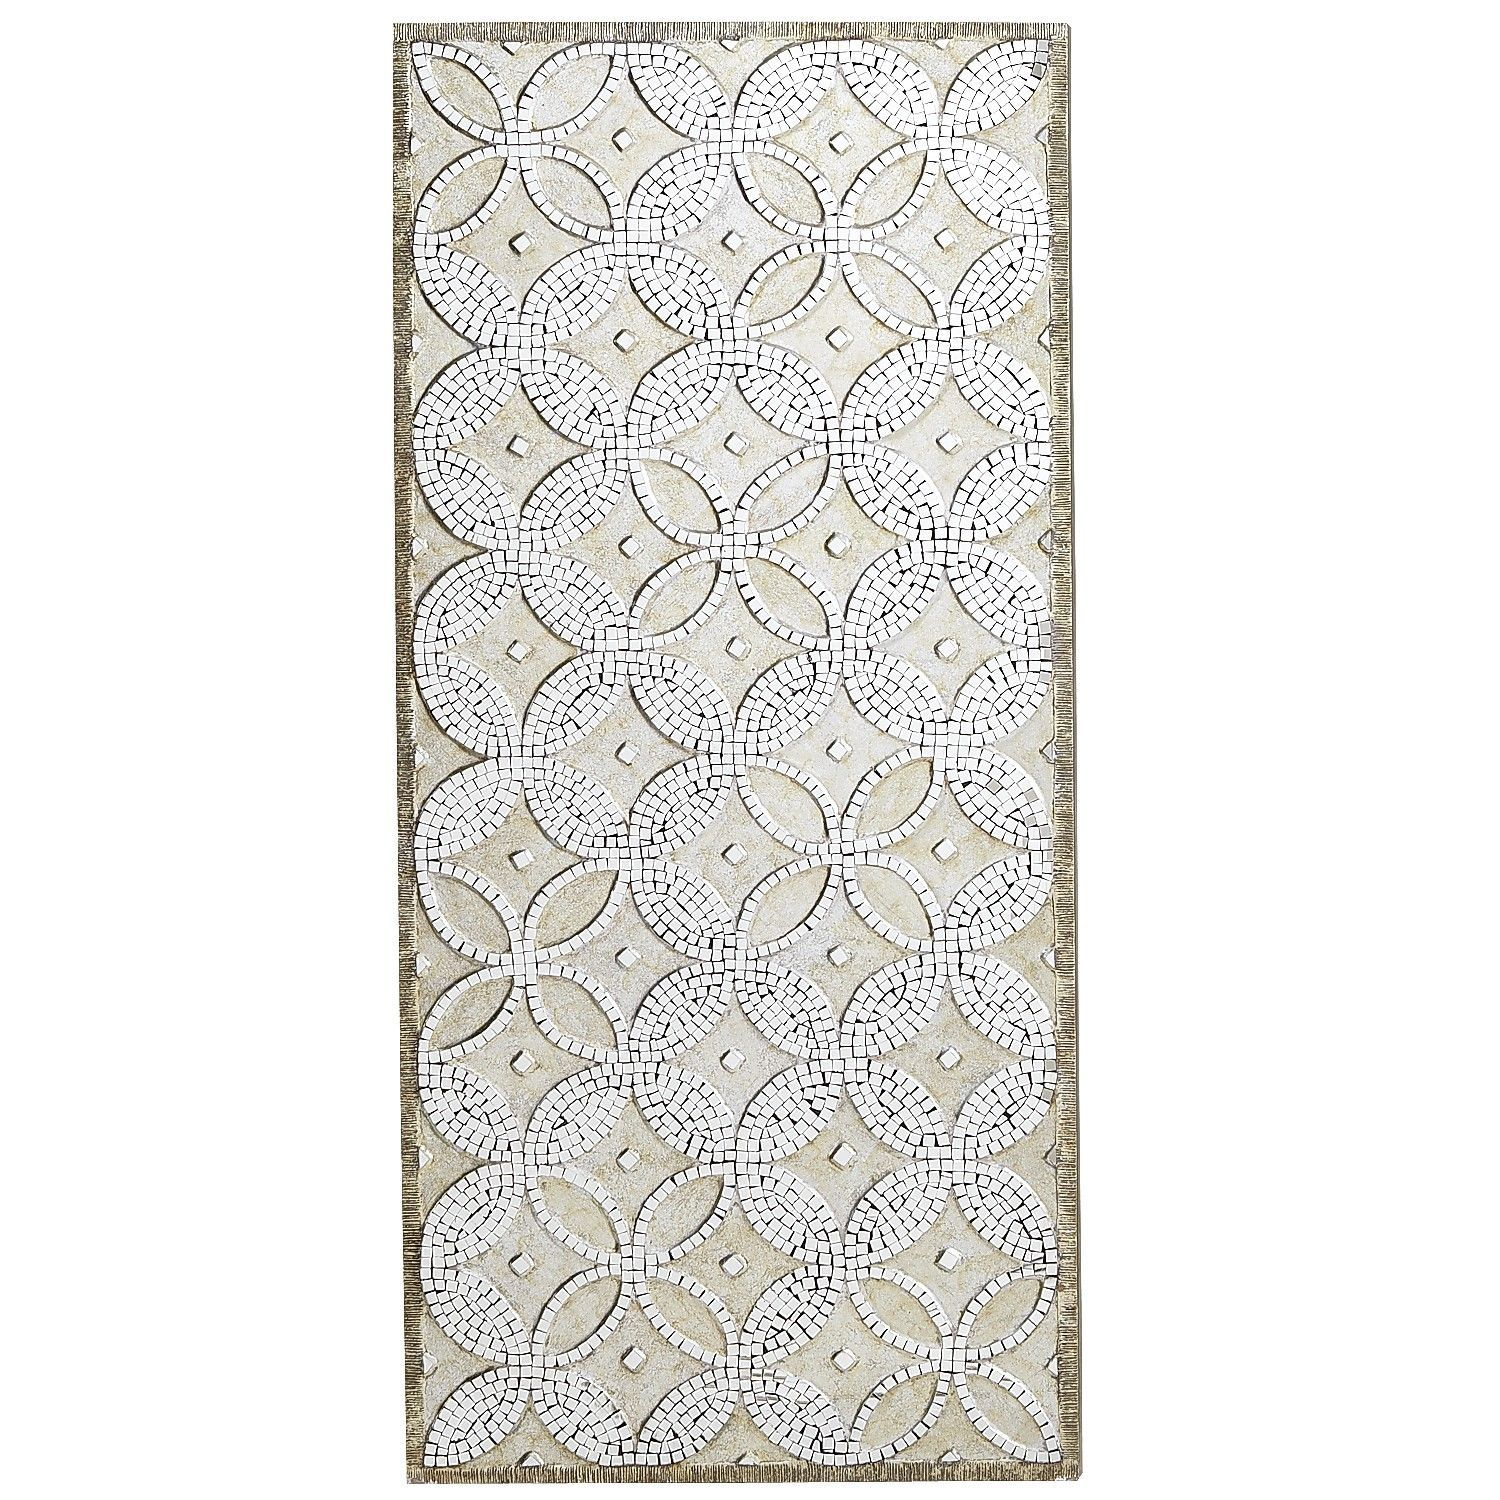 Pier 1: Mirrored Geometric Wall Panel - Champagne | Home ...